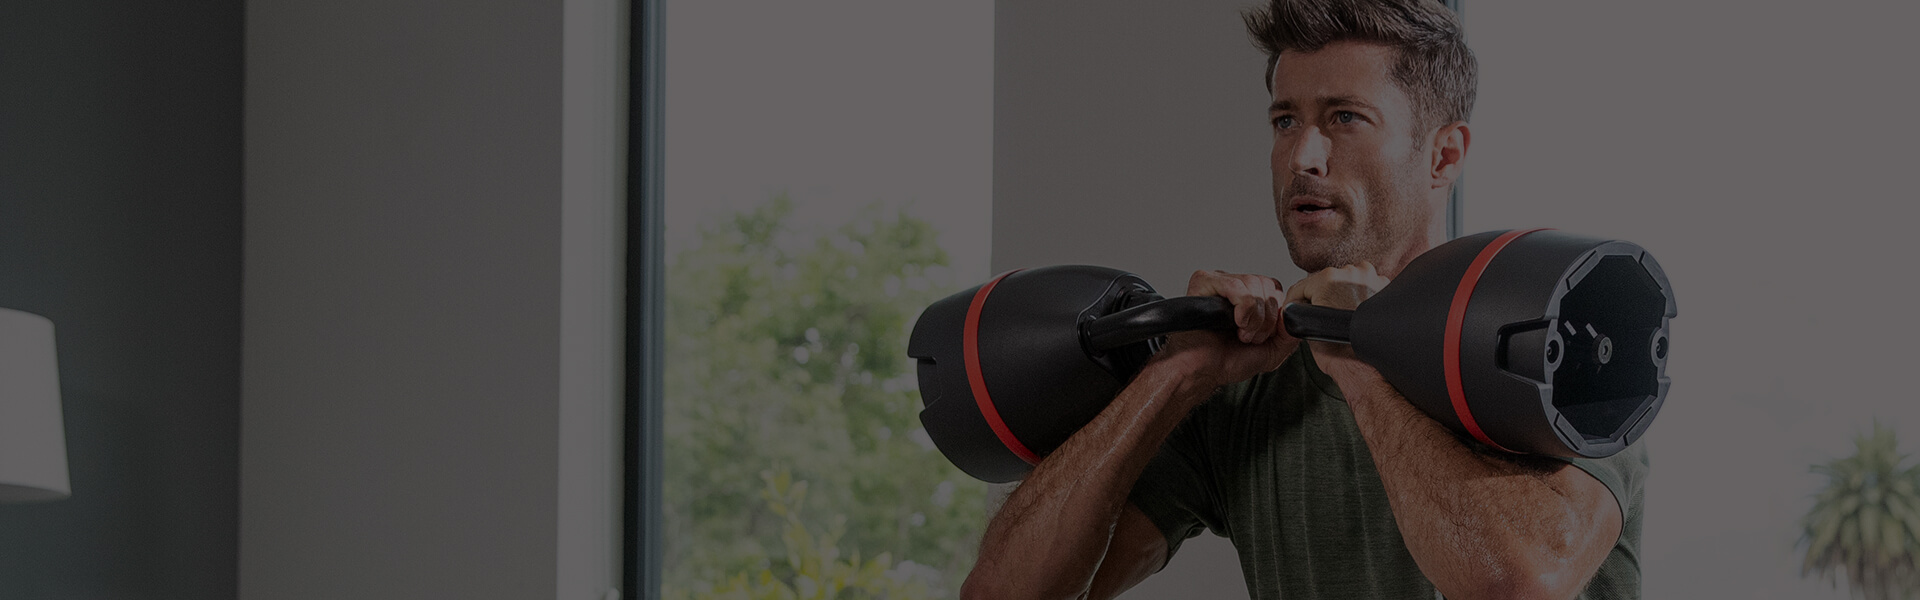 Kettlebell Exercise How-To Videos